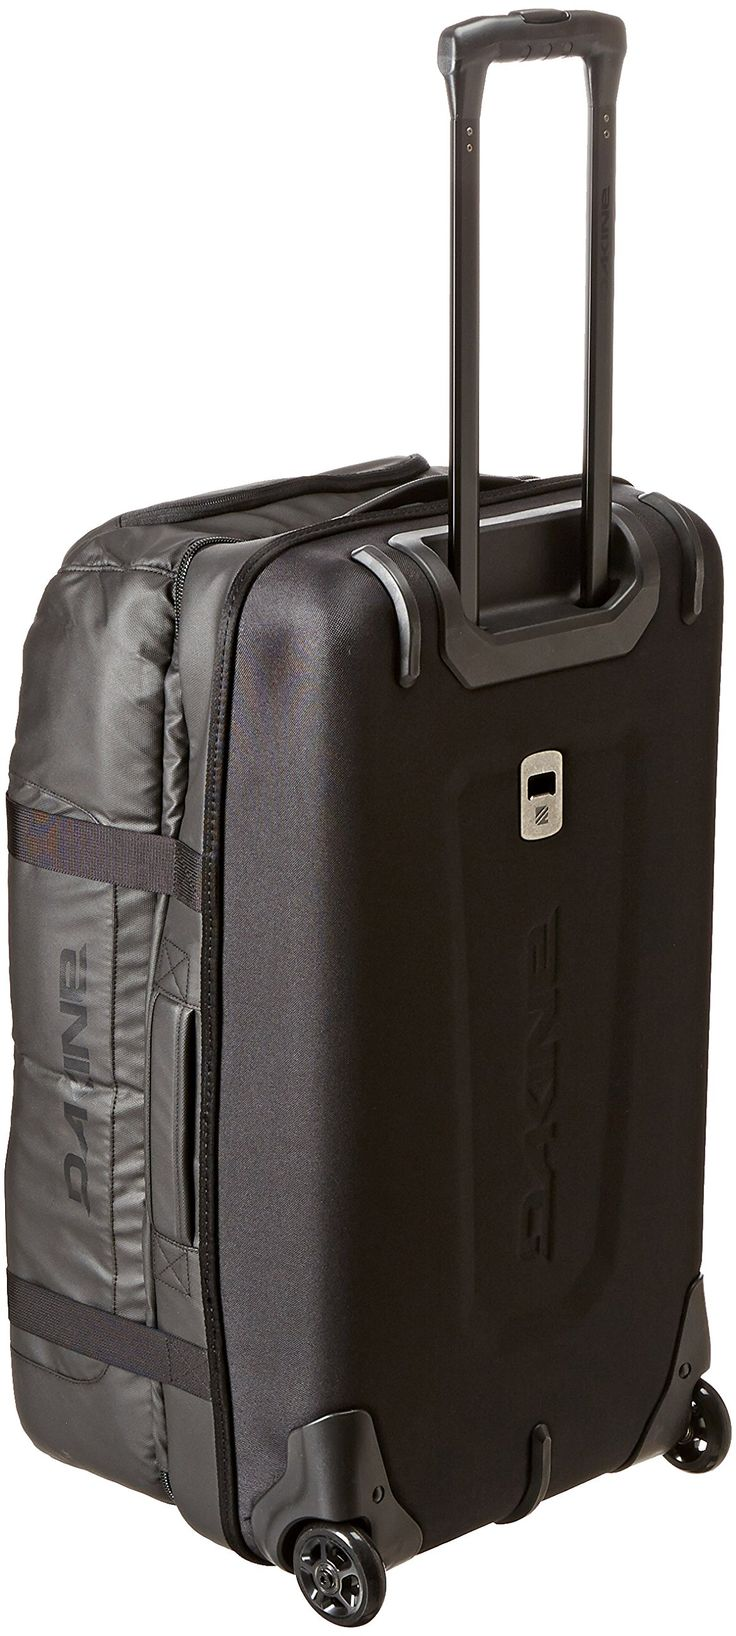 200 poly 15 x 29 x 16 inches 8 8lbs travel luggage